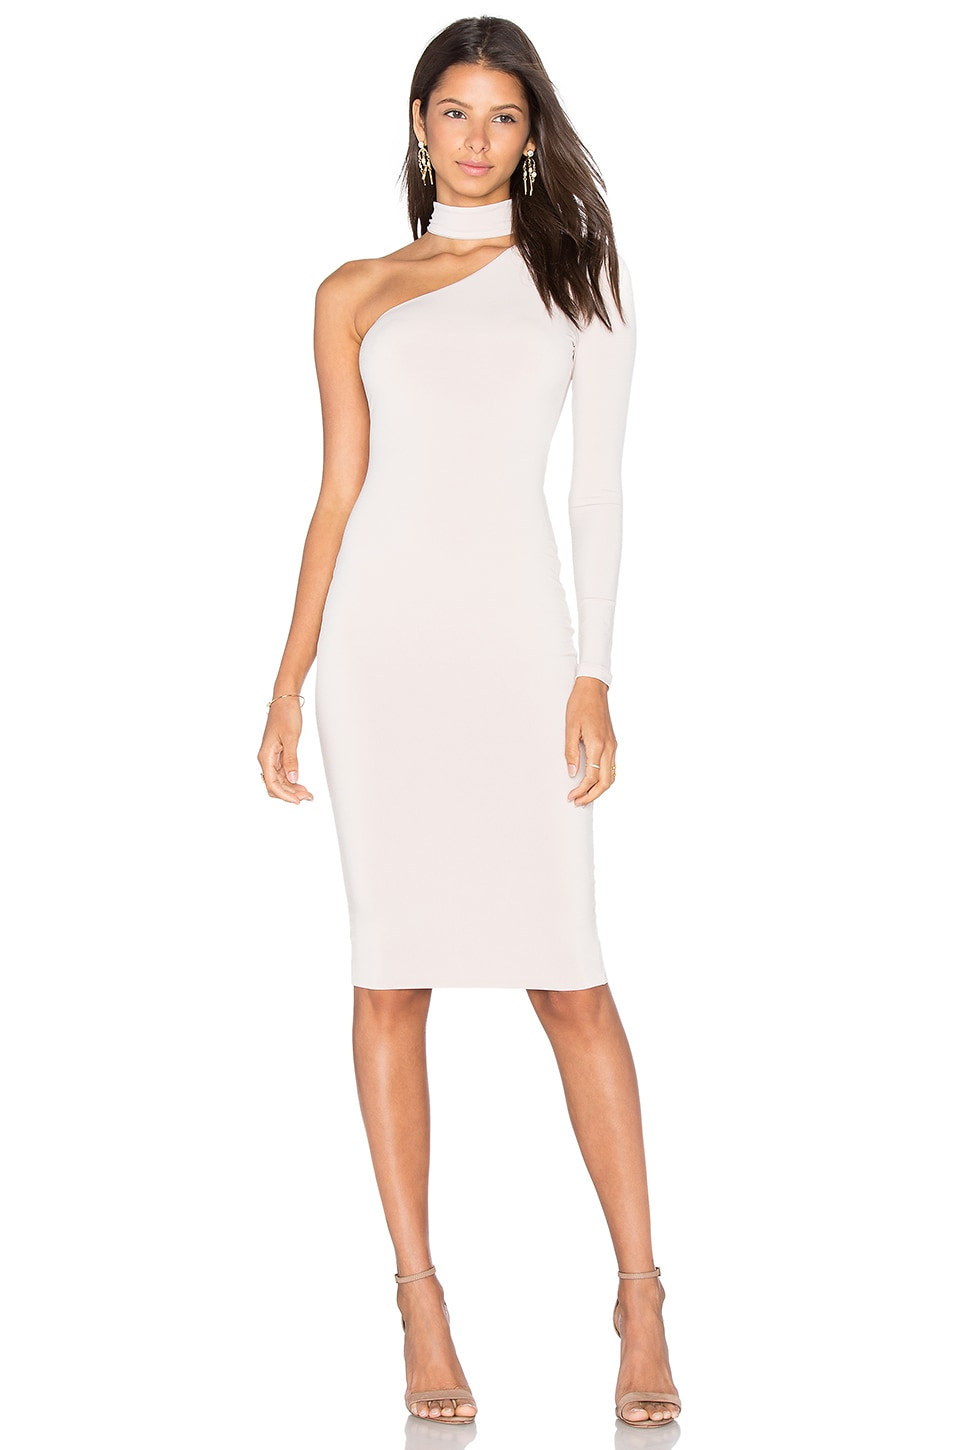 Nookie Girl Talk One Shoulder Midi Dress in Nude